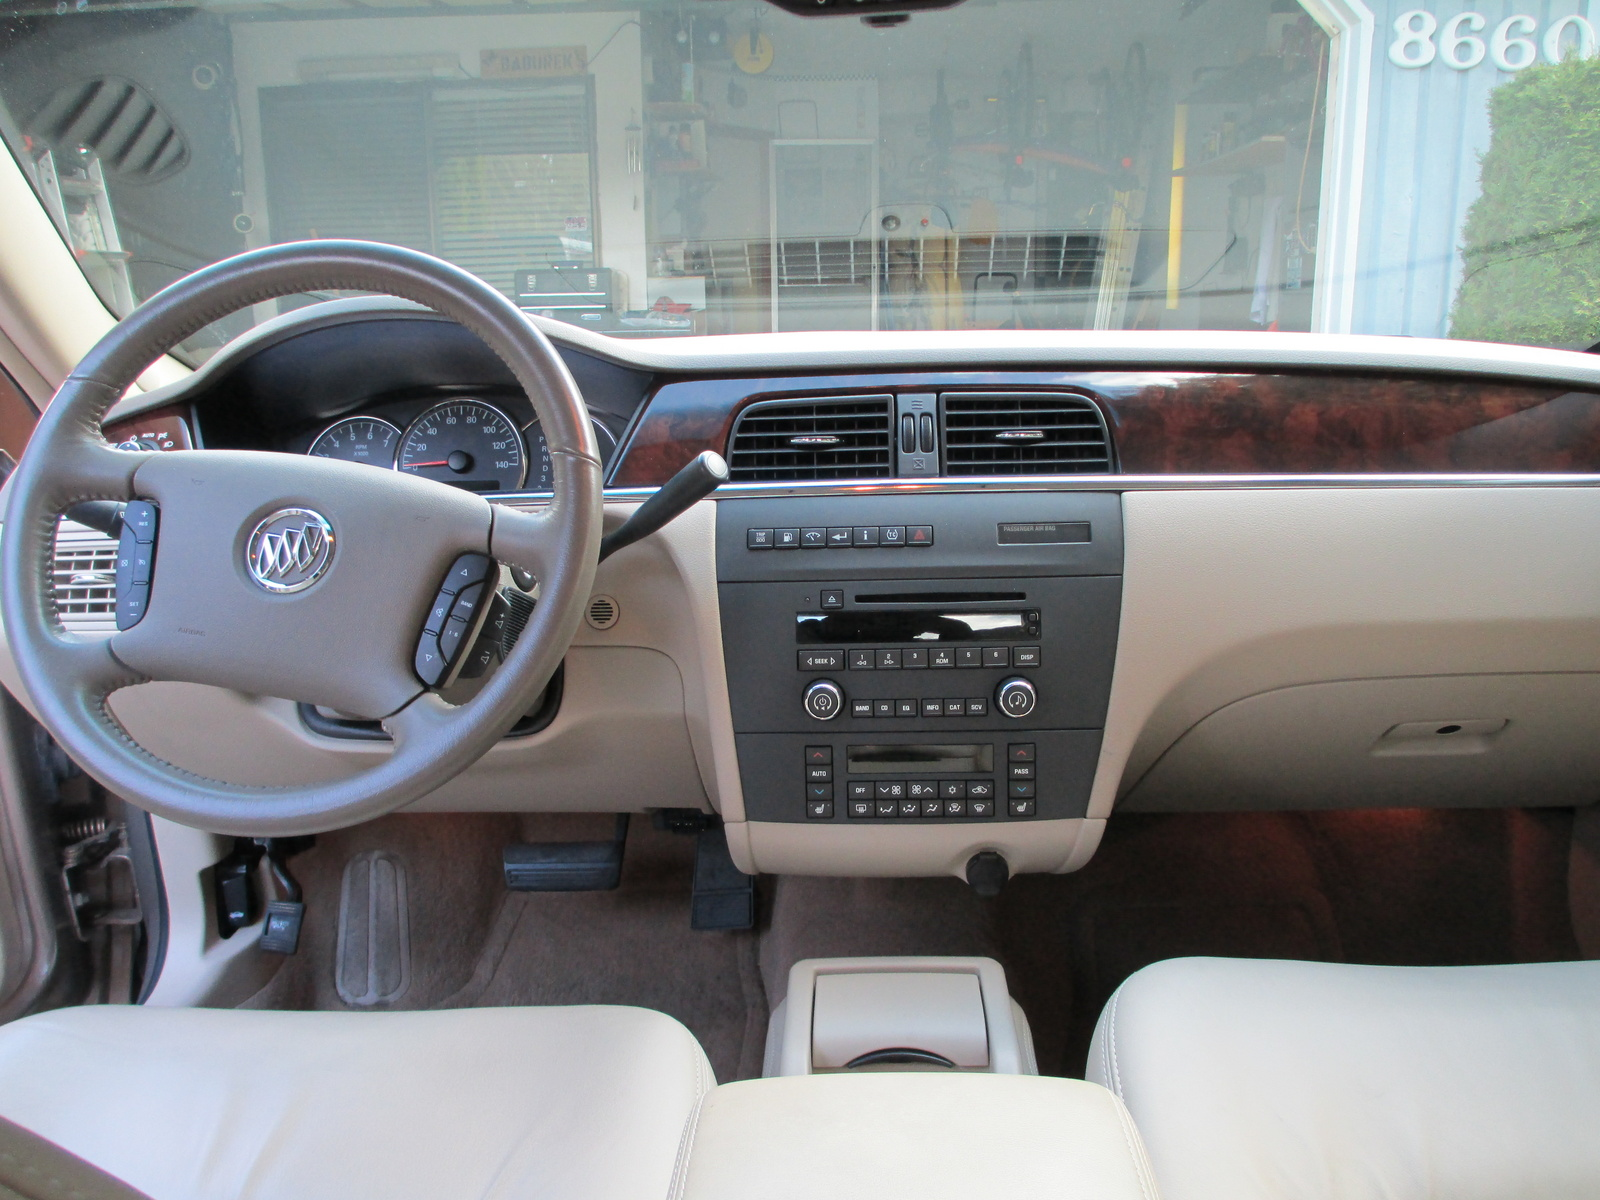 Buick Lacrosse Cxl Pic on 2007 Buick Lacrosse Cxl Reviews